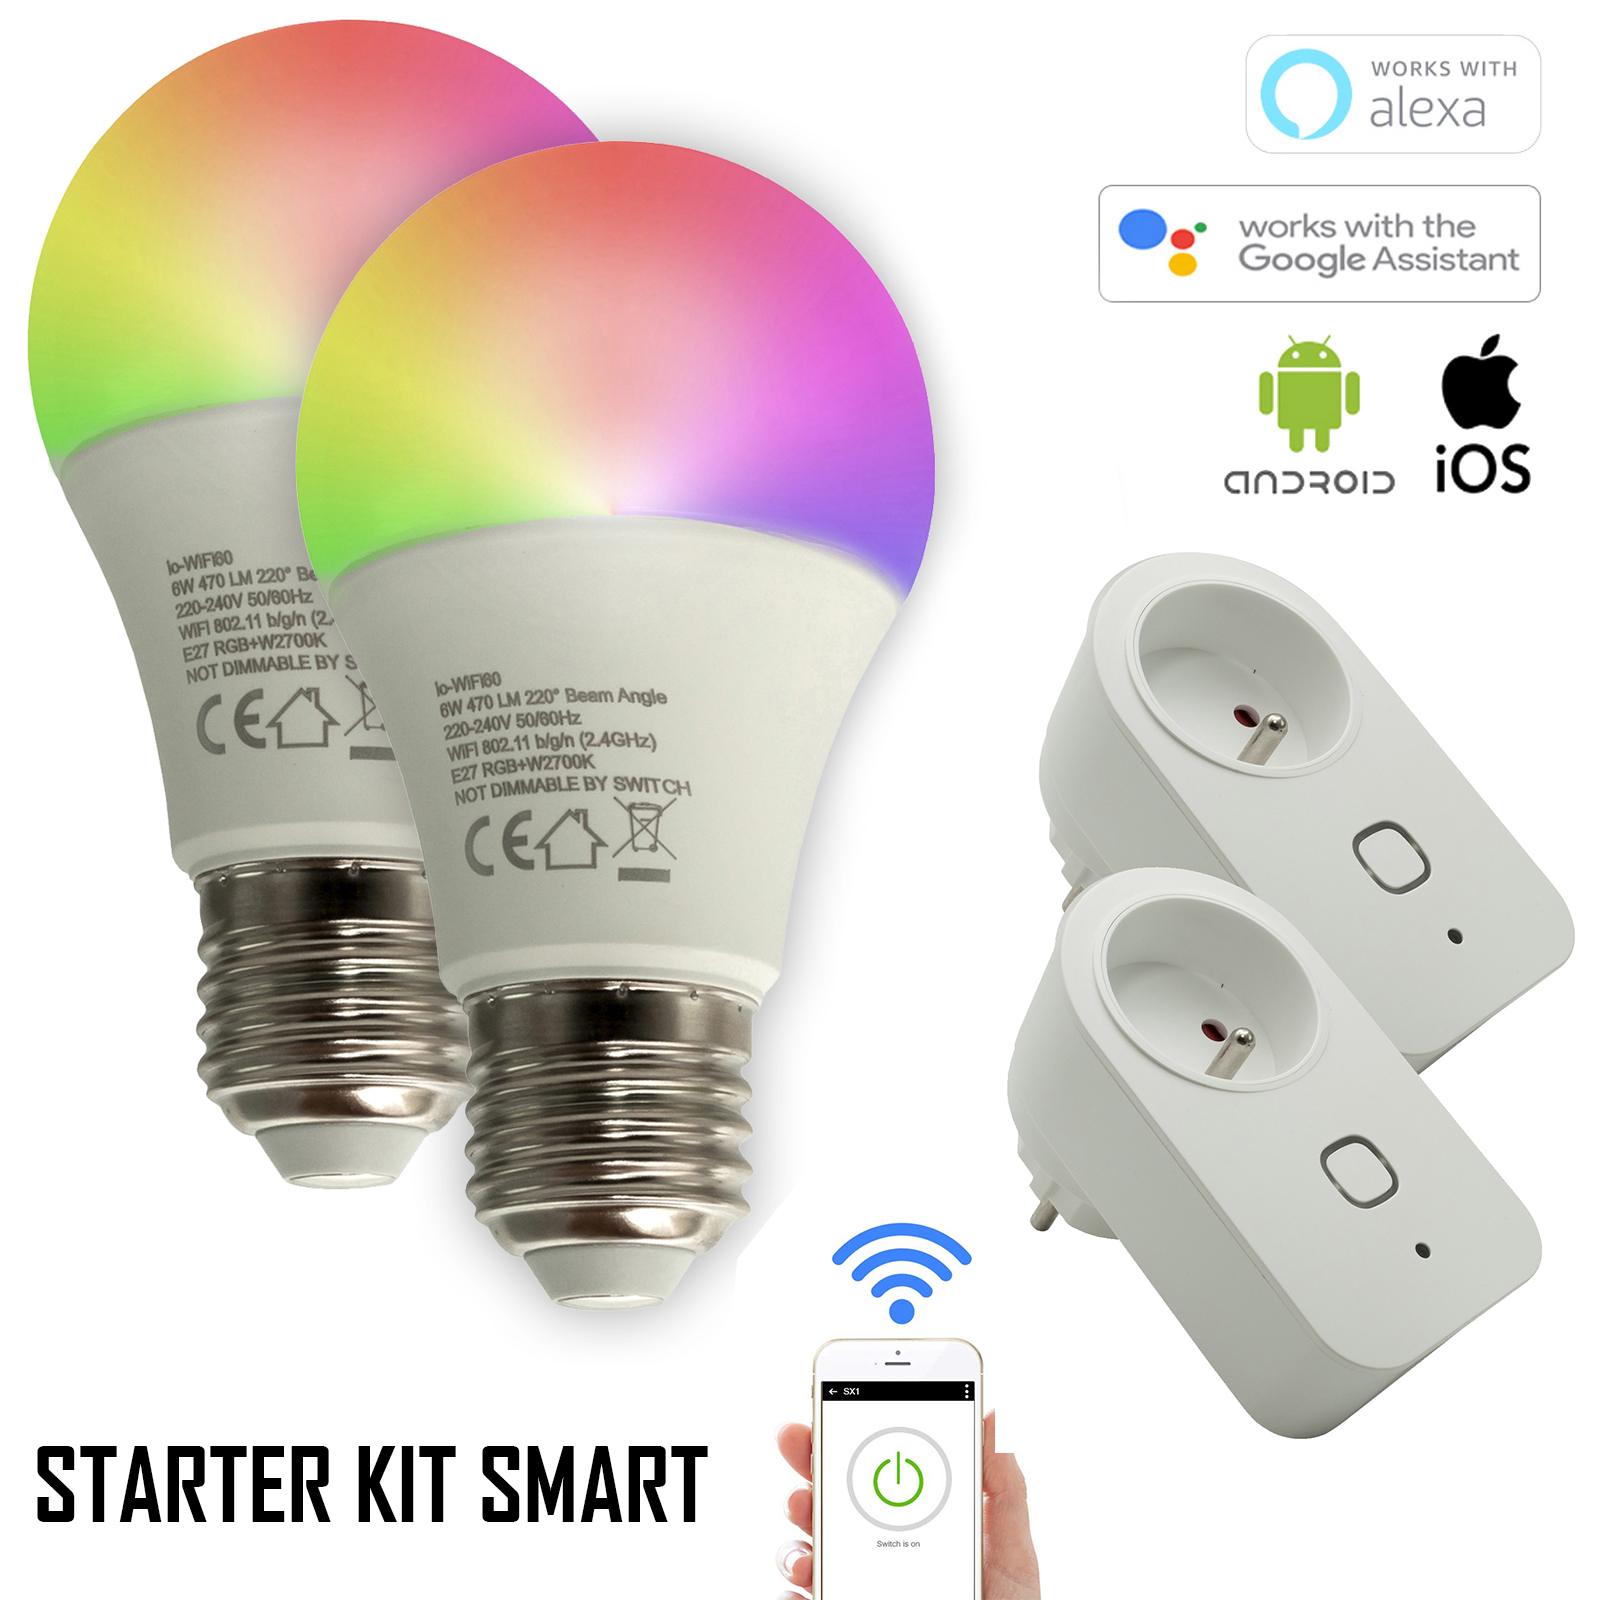 SMART WiFi STARTER KIT 2 lampade LED E27 RGBW 2700K 12W cromoterapia + 2 prese shuko intelligenti NO HUB Amazon Alexa Googole Home IFTTT app smartphone Android iOS